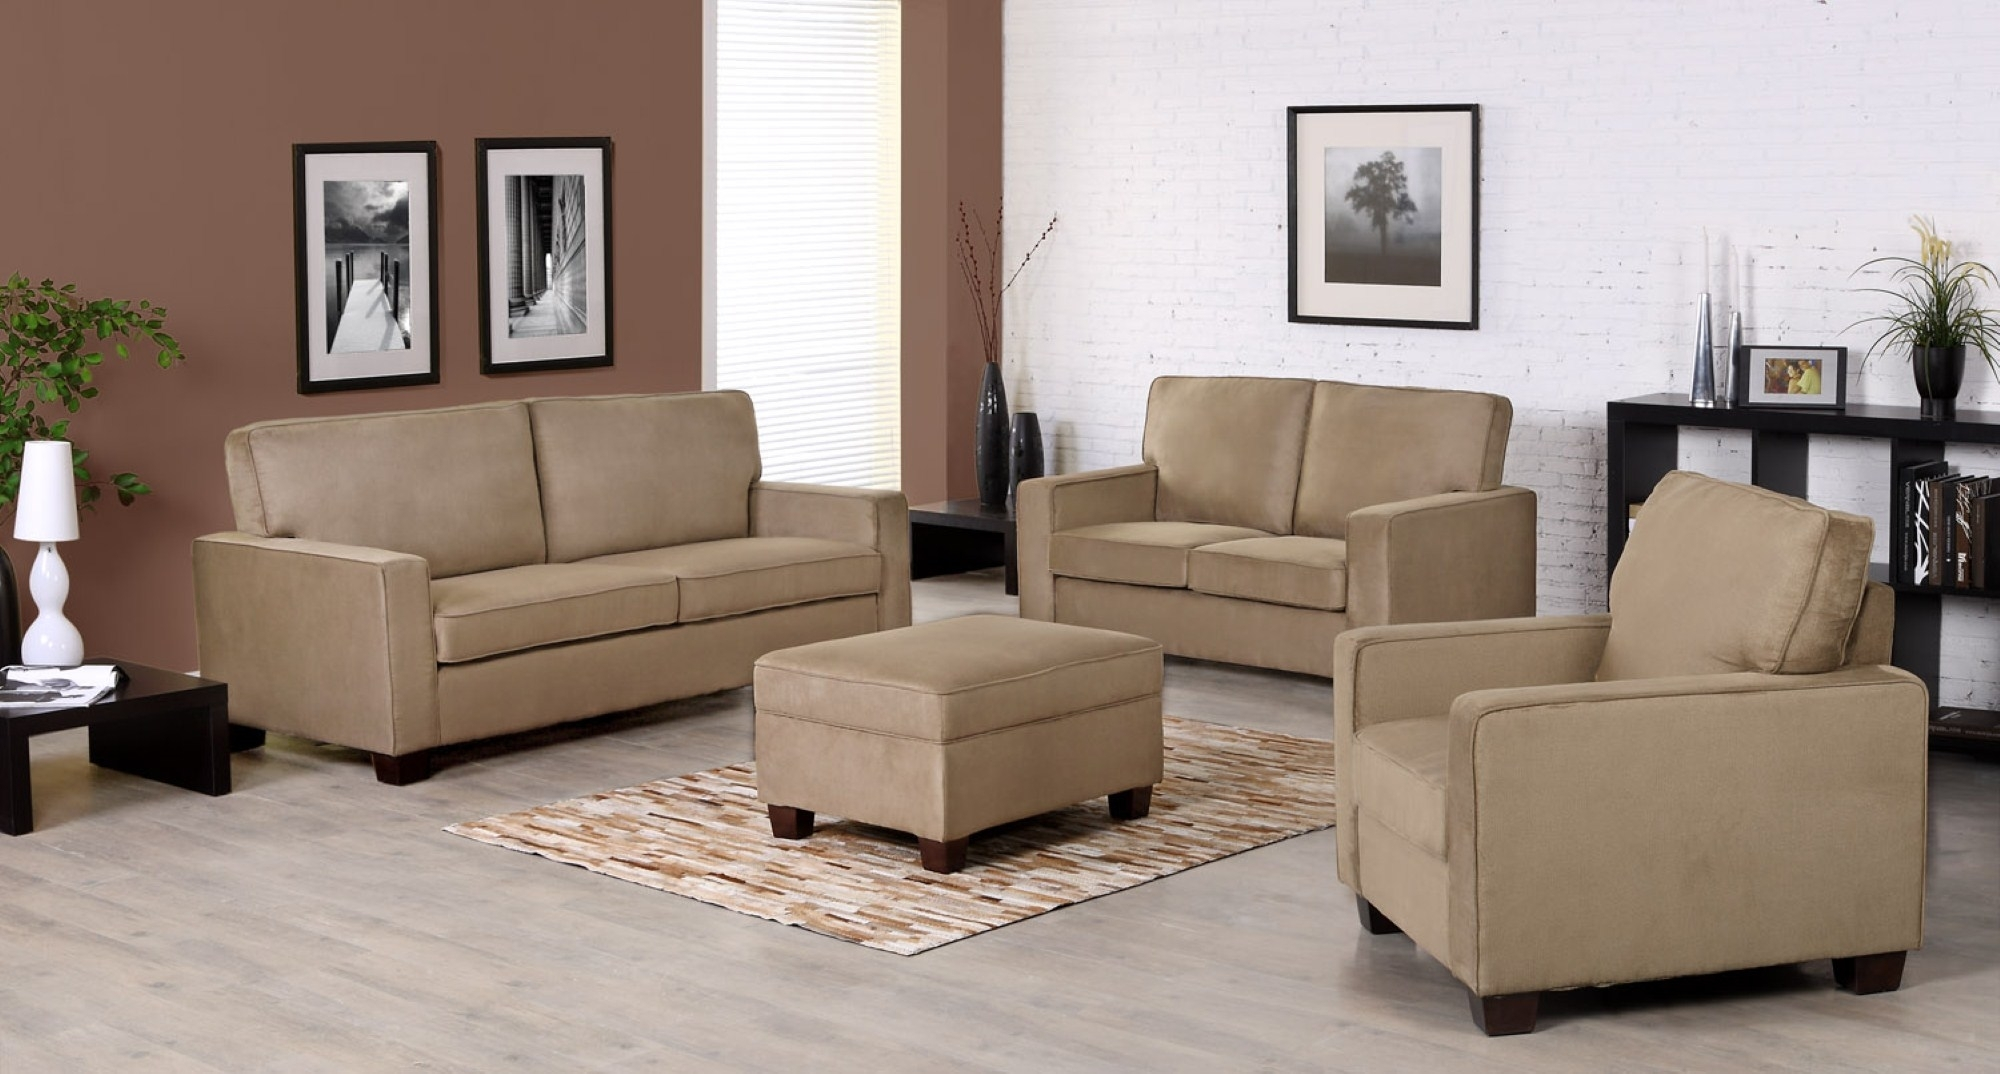 Inspiring Unique Sofa Sets Pictures Best Idea Home Design Compact within Sectional Sofas In Hyderabad (Image 6 of 10)